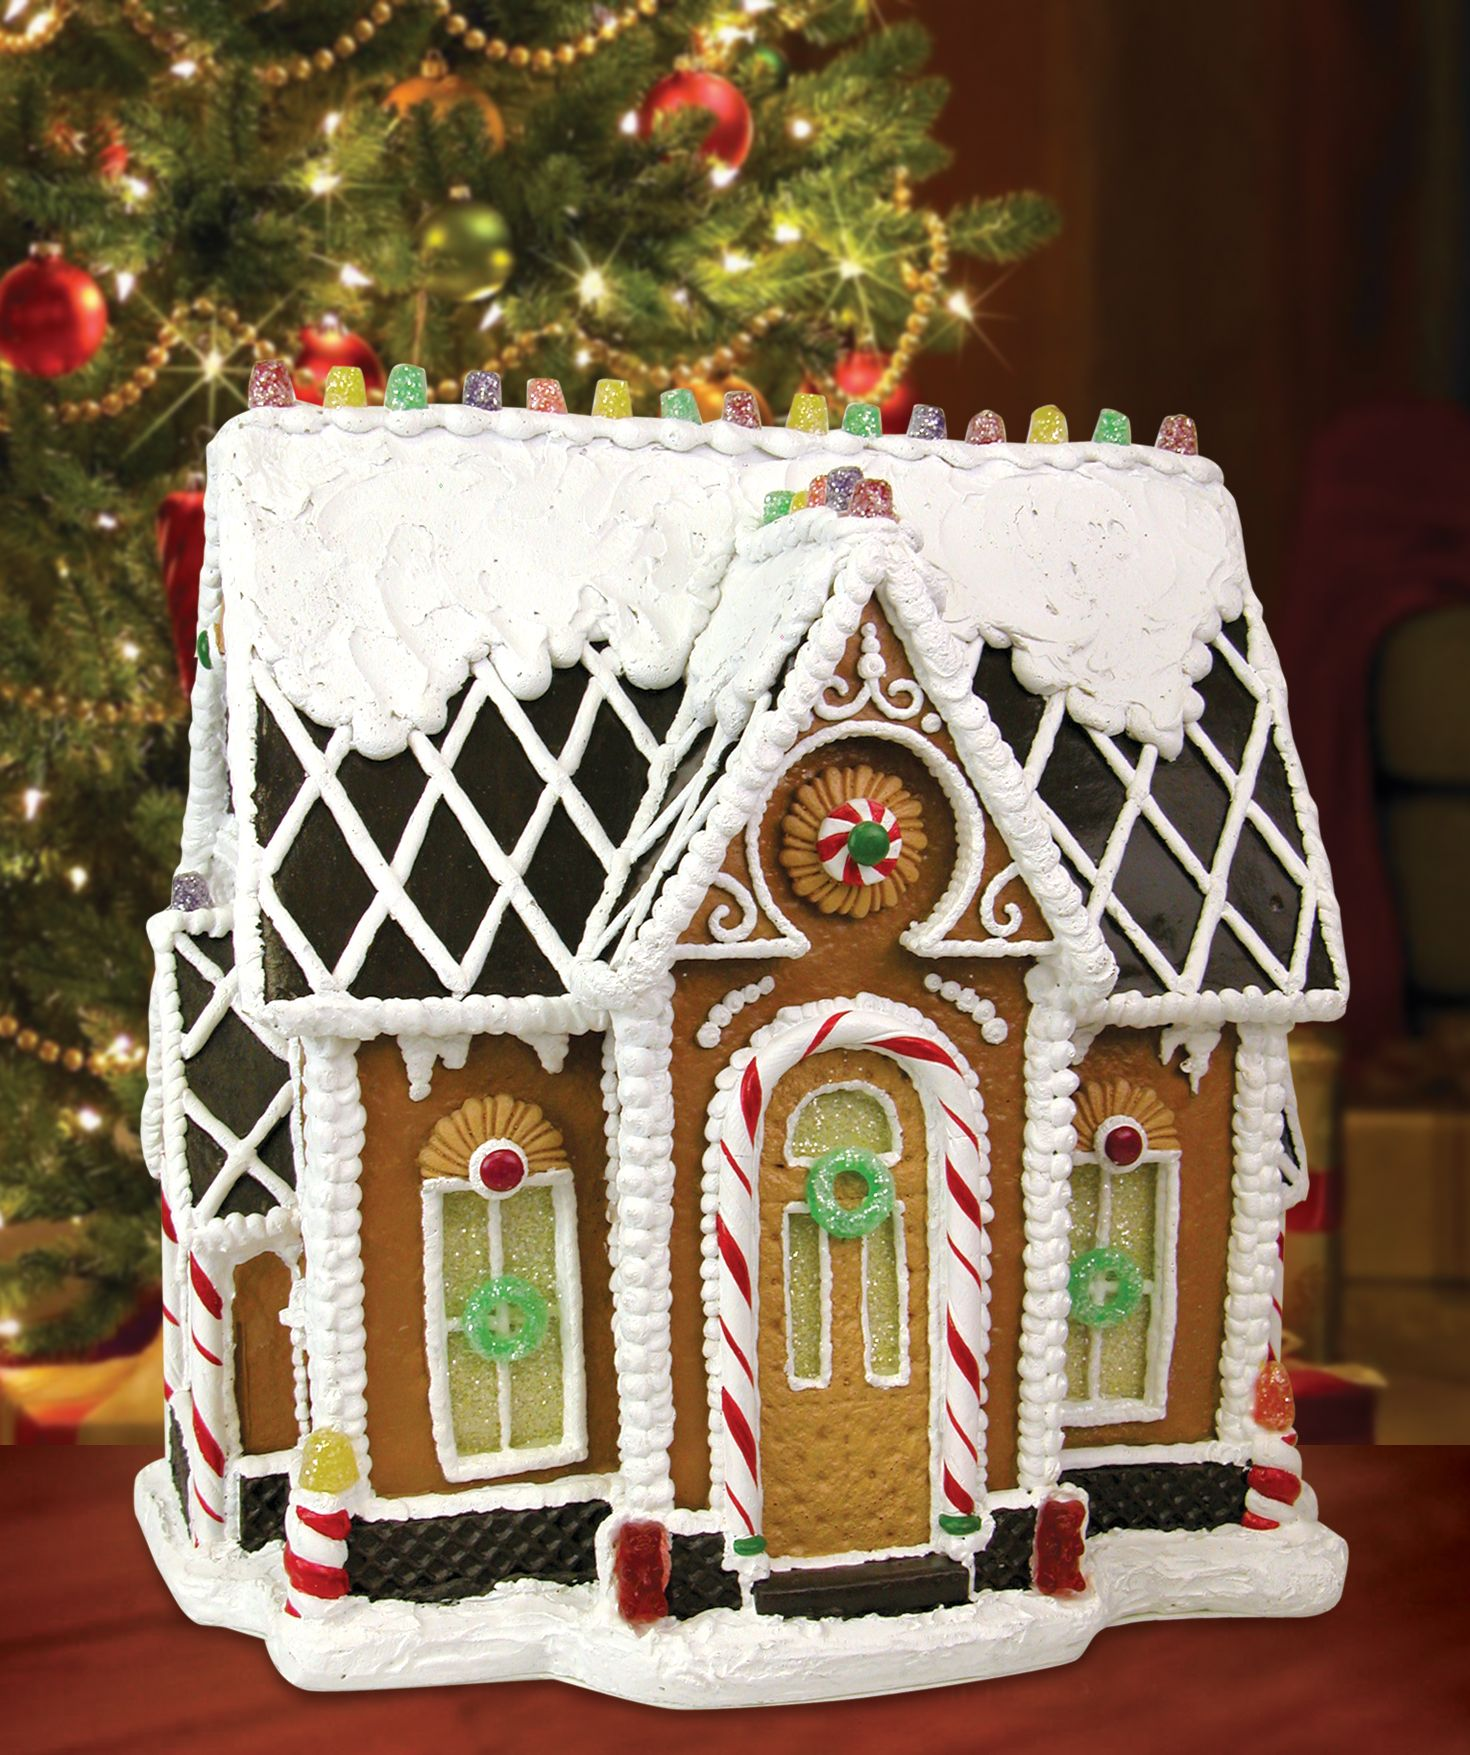 Decoration Ideas Are Christmas Carolers Decorations Needed: Gumdrop Gables Resin Gingerbread